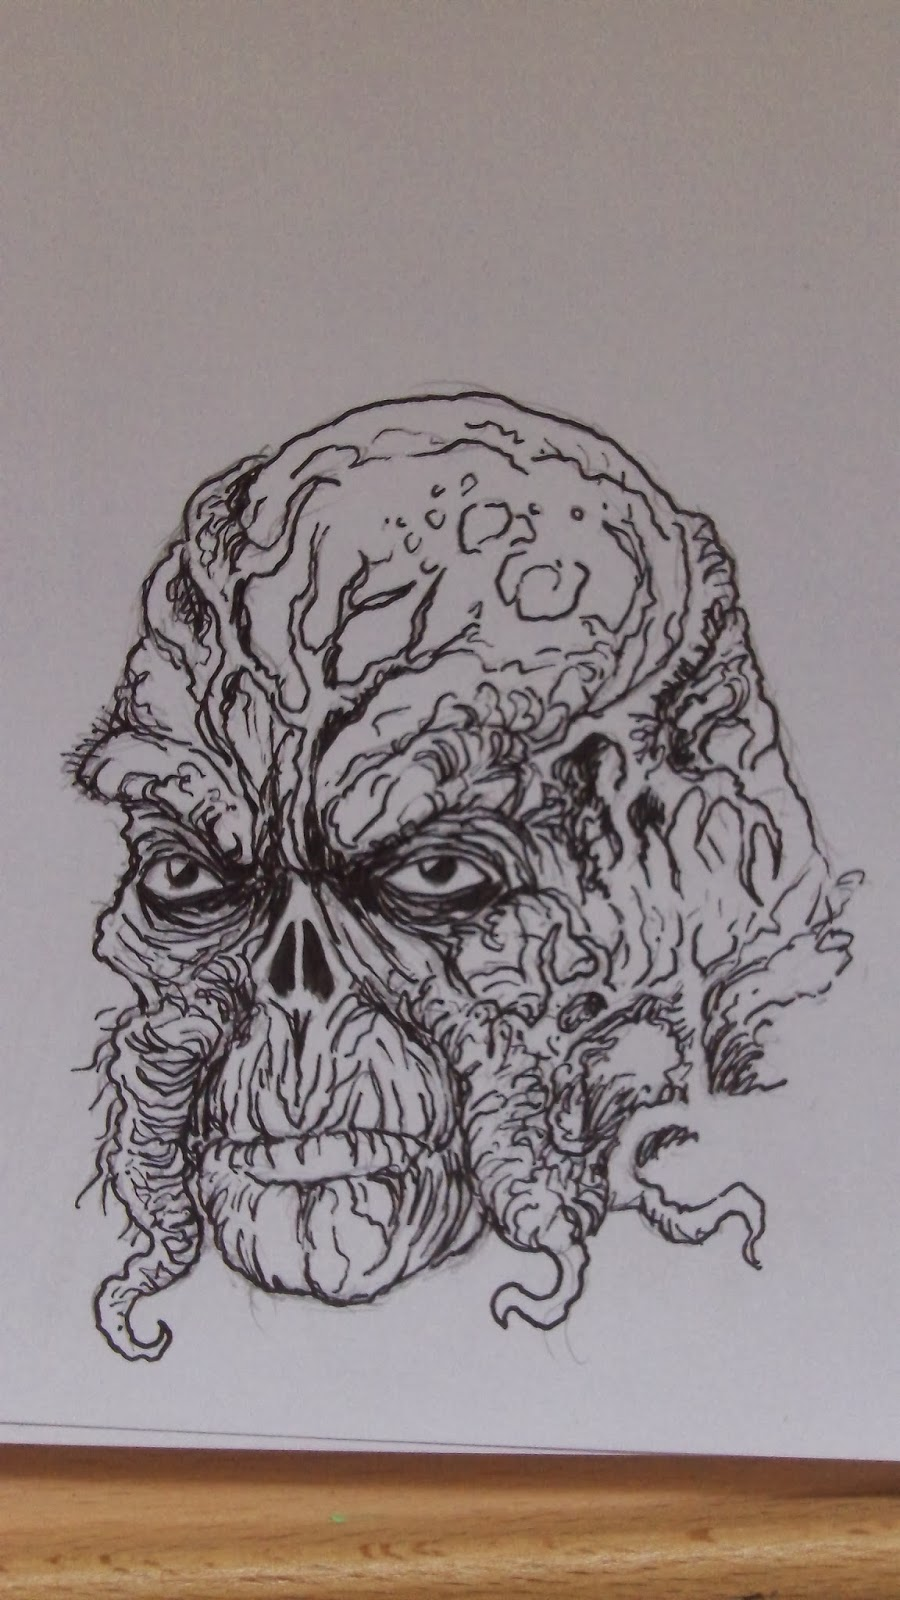 drawswampthing